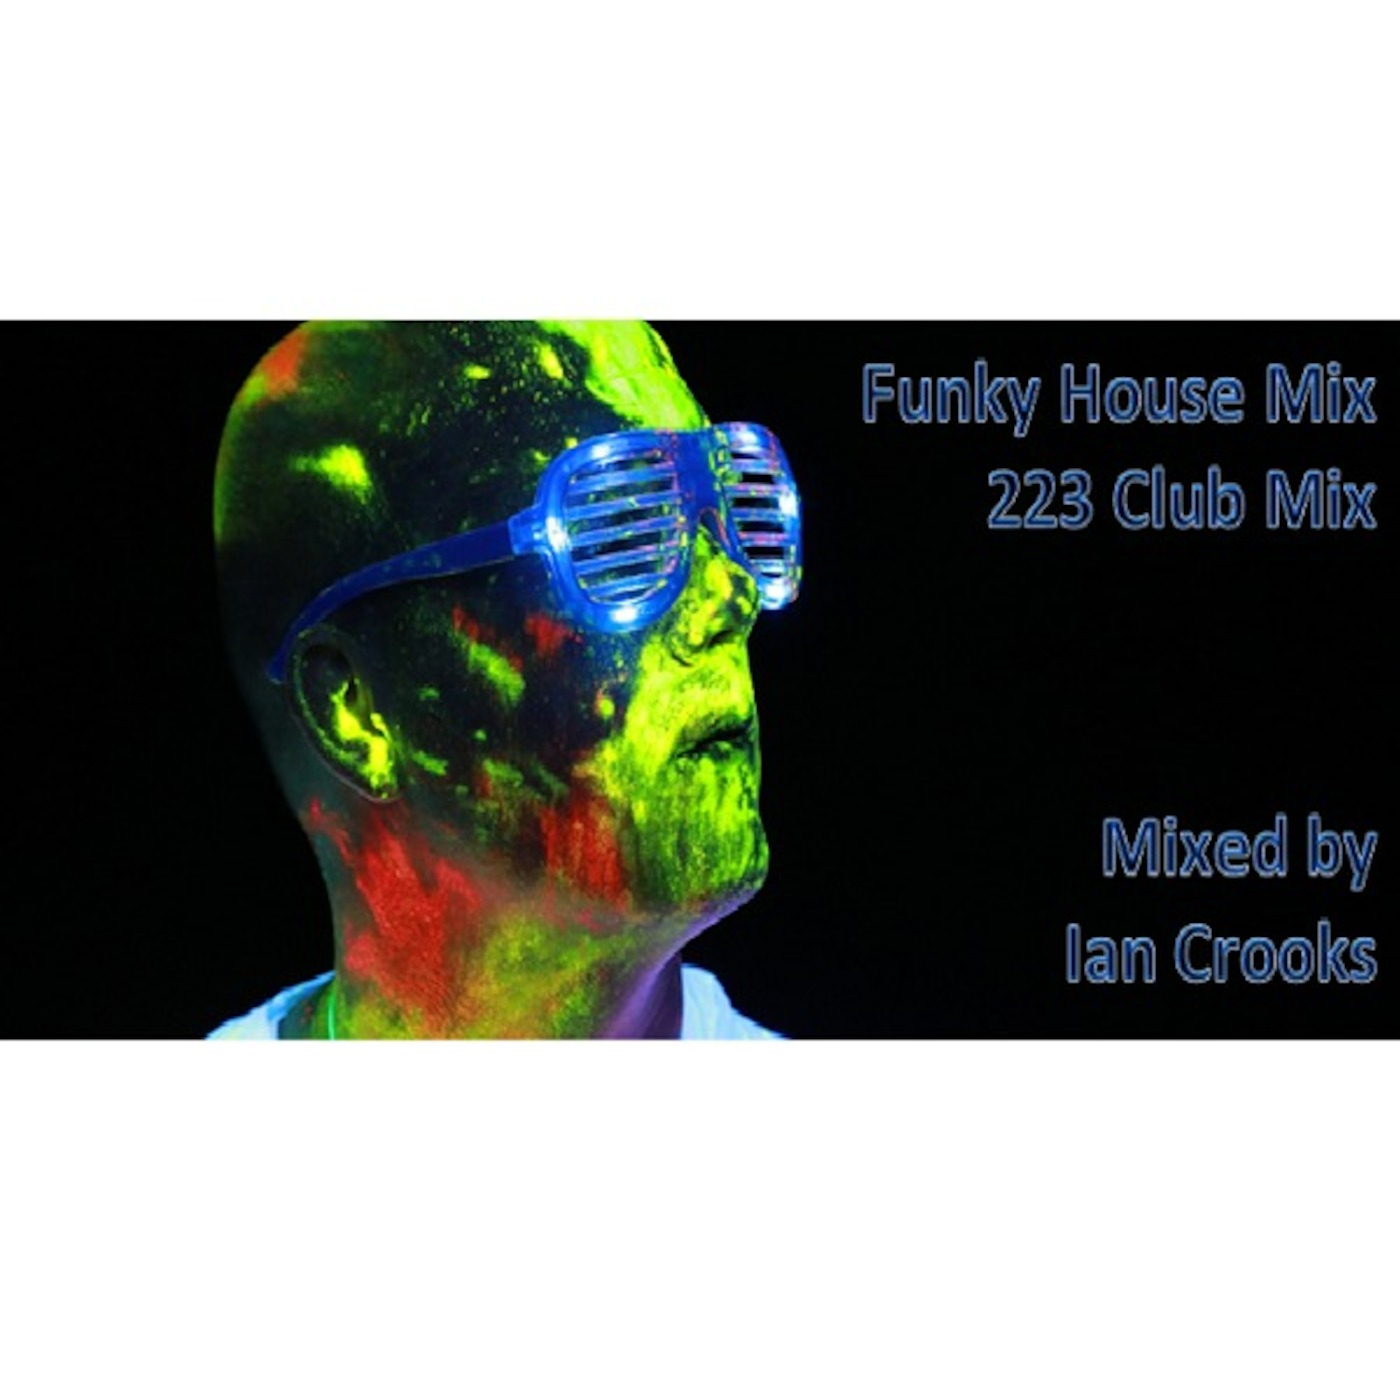 Funky house mix 223 club mix funky house mixes podcast for Funky house music classics